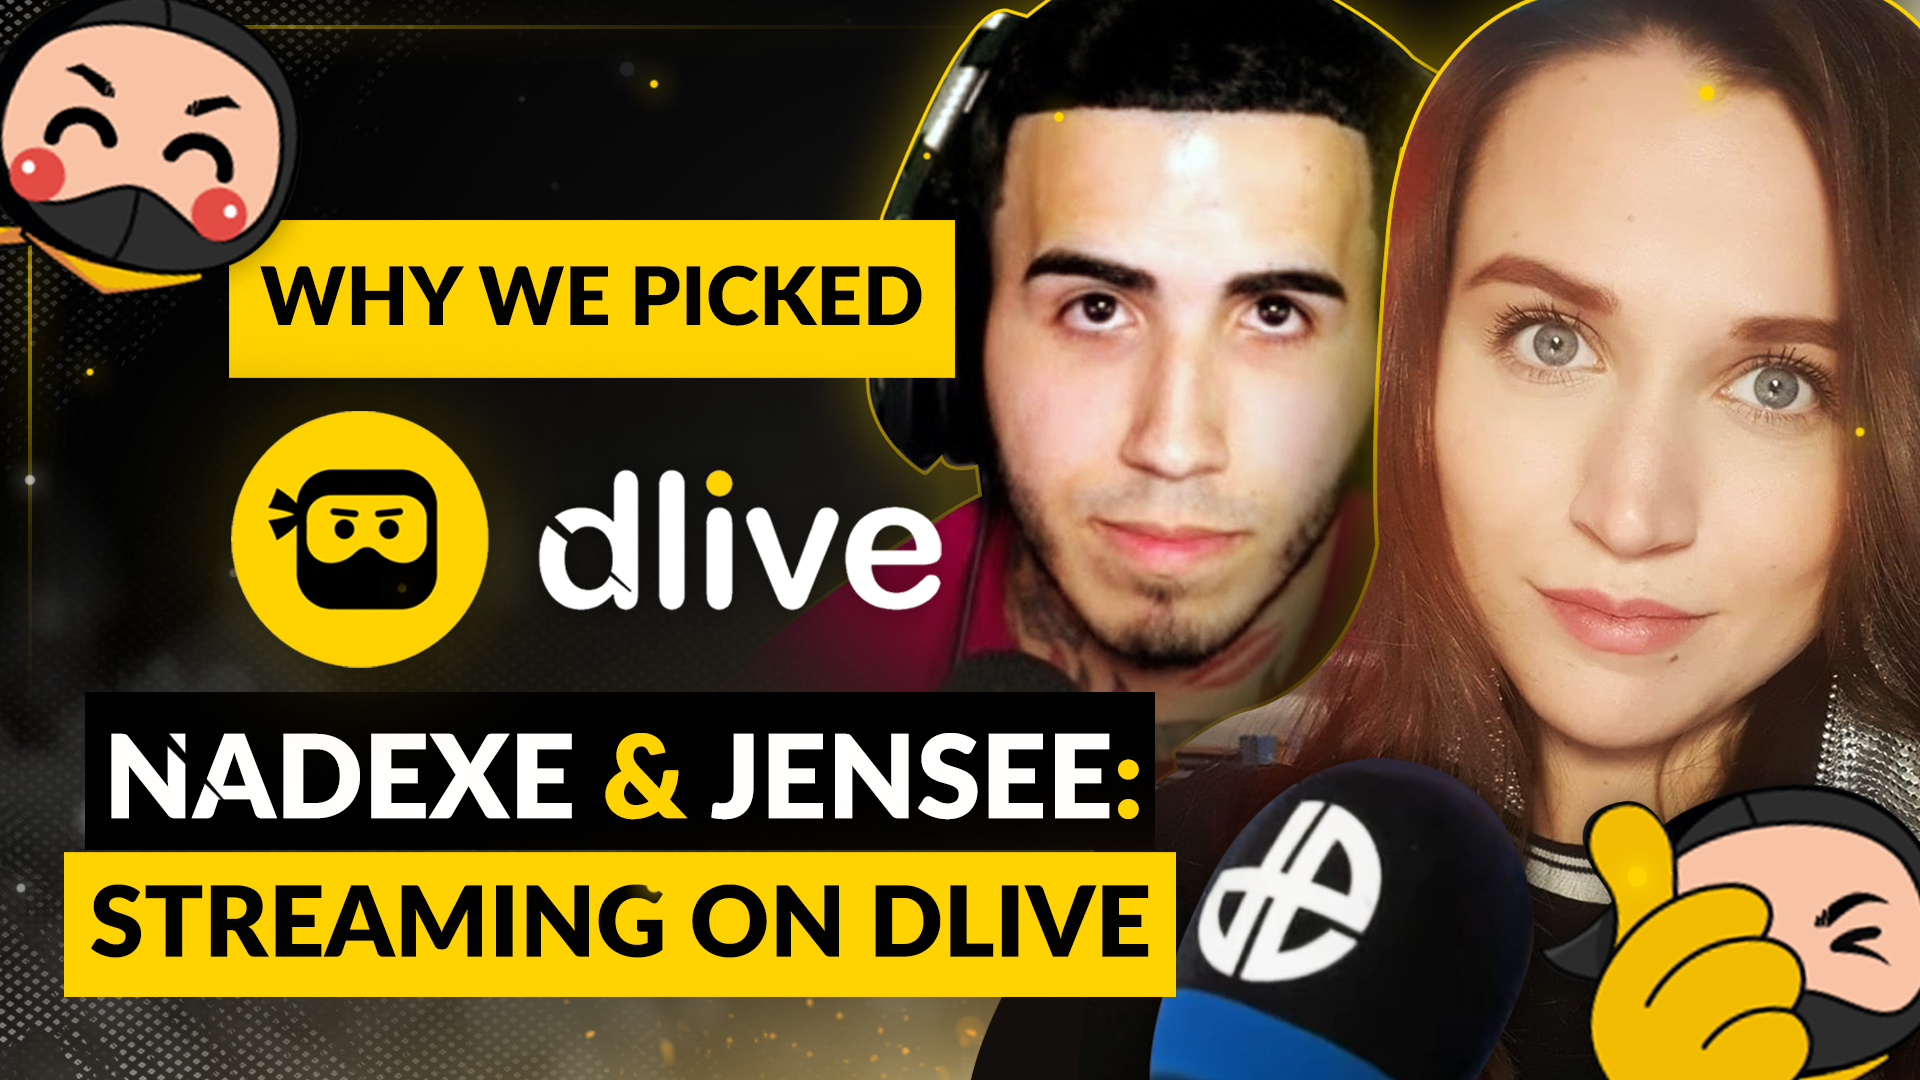 DLive streamers